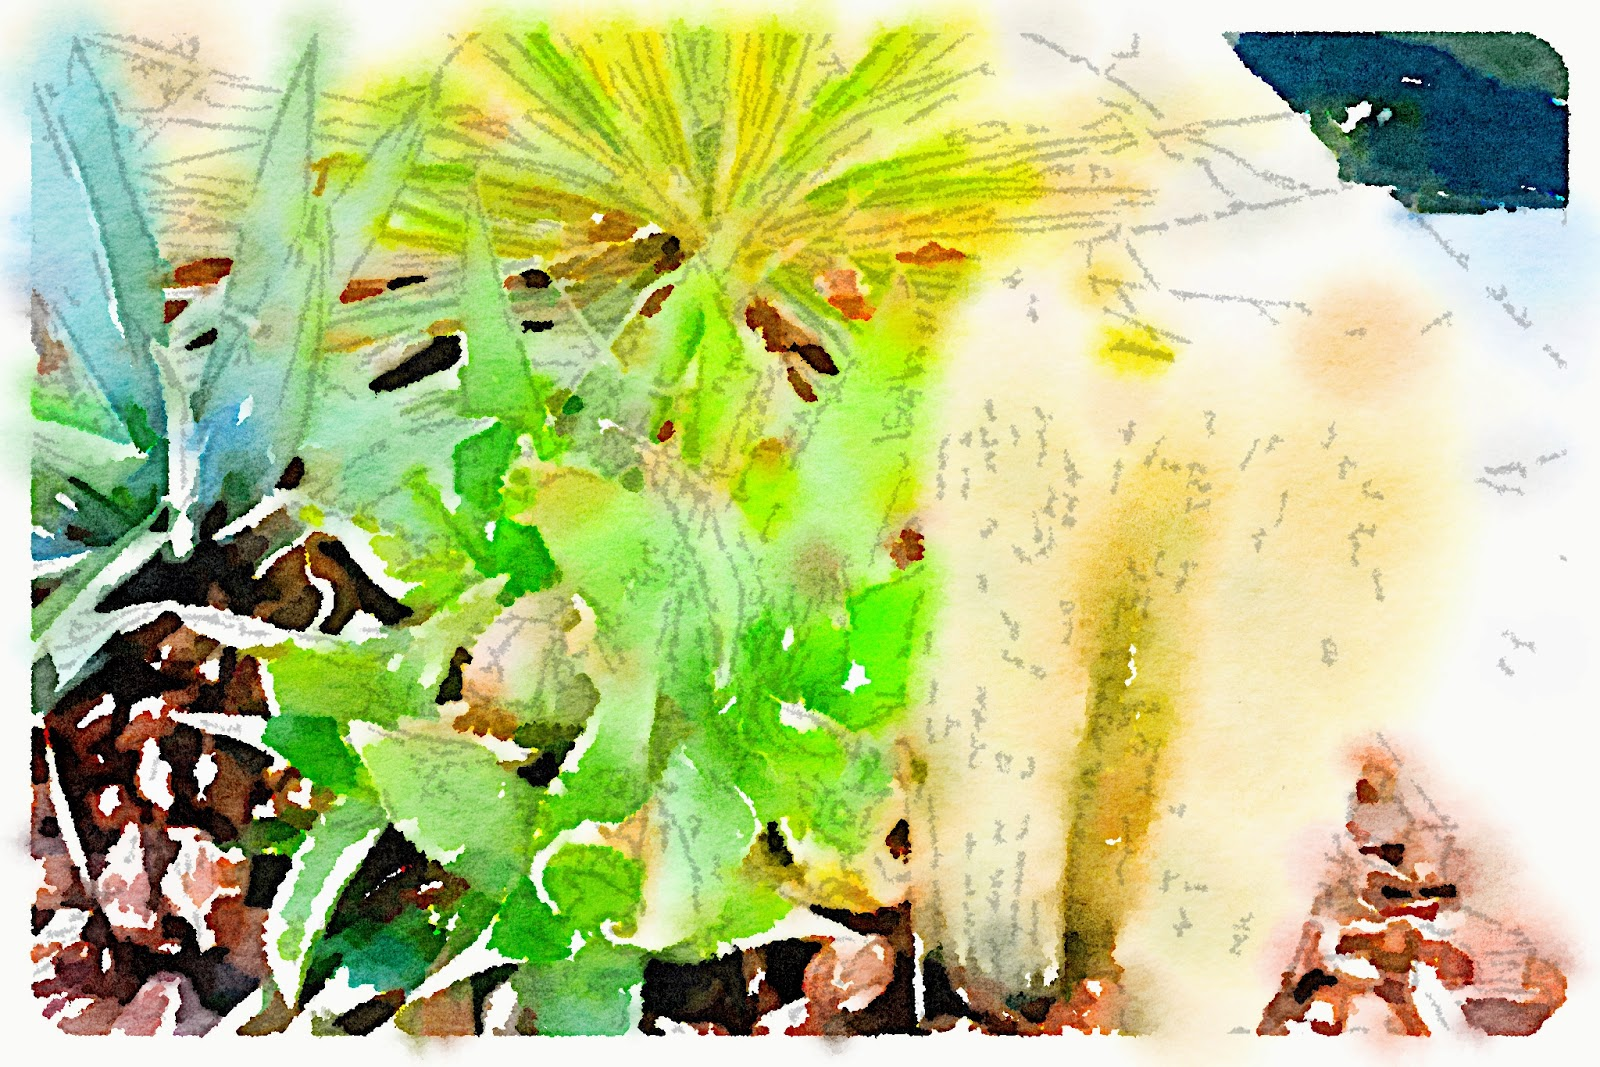 waterlogue,aquarelle,illustration,photos,bensimon,bensimon hossegor,hossegor